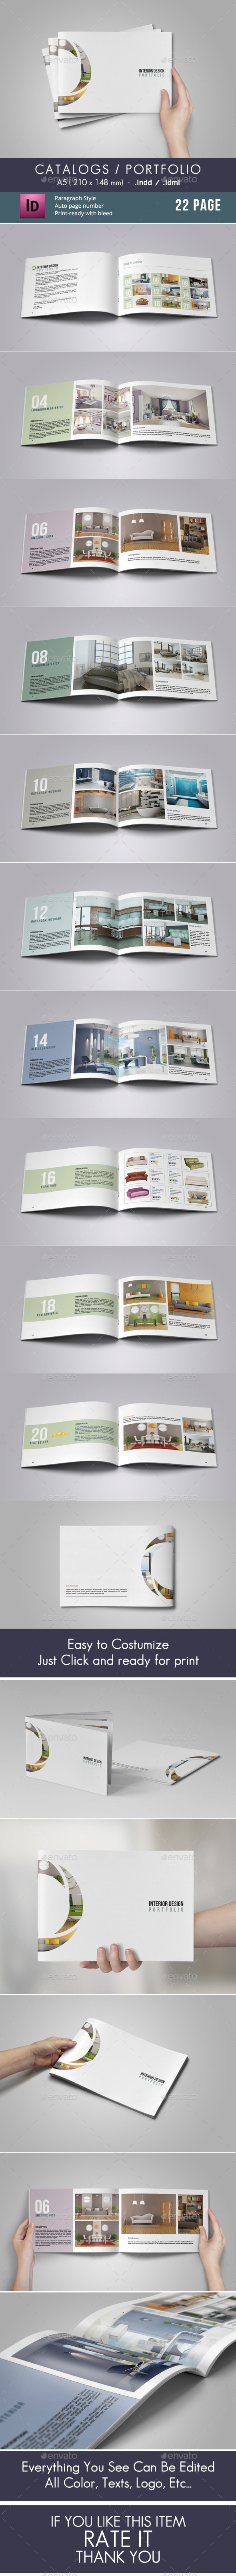 GraphicRiver Catalogs Portfolio 8878358